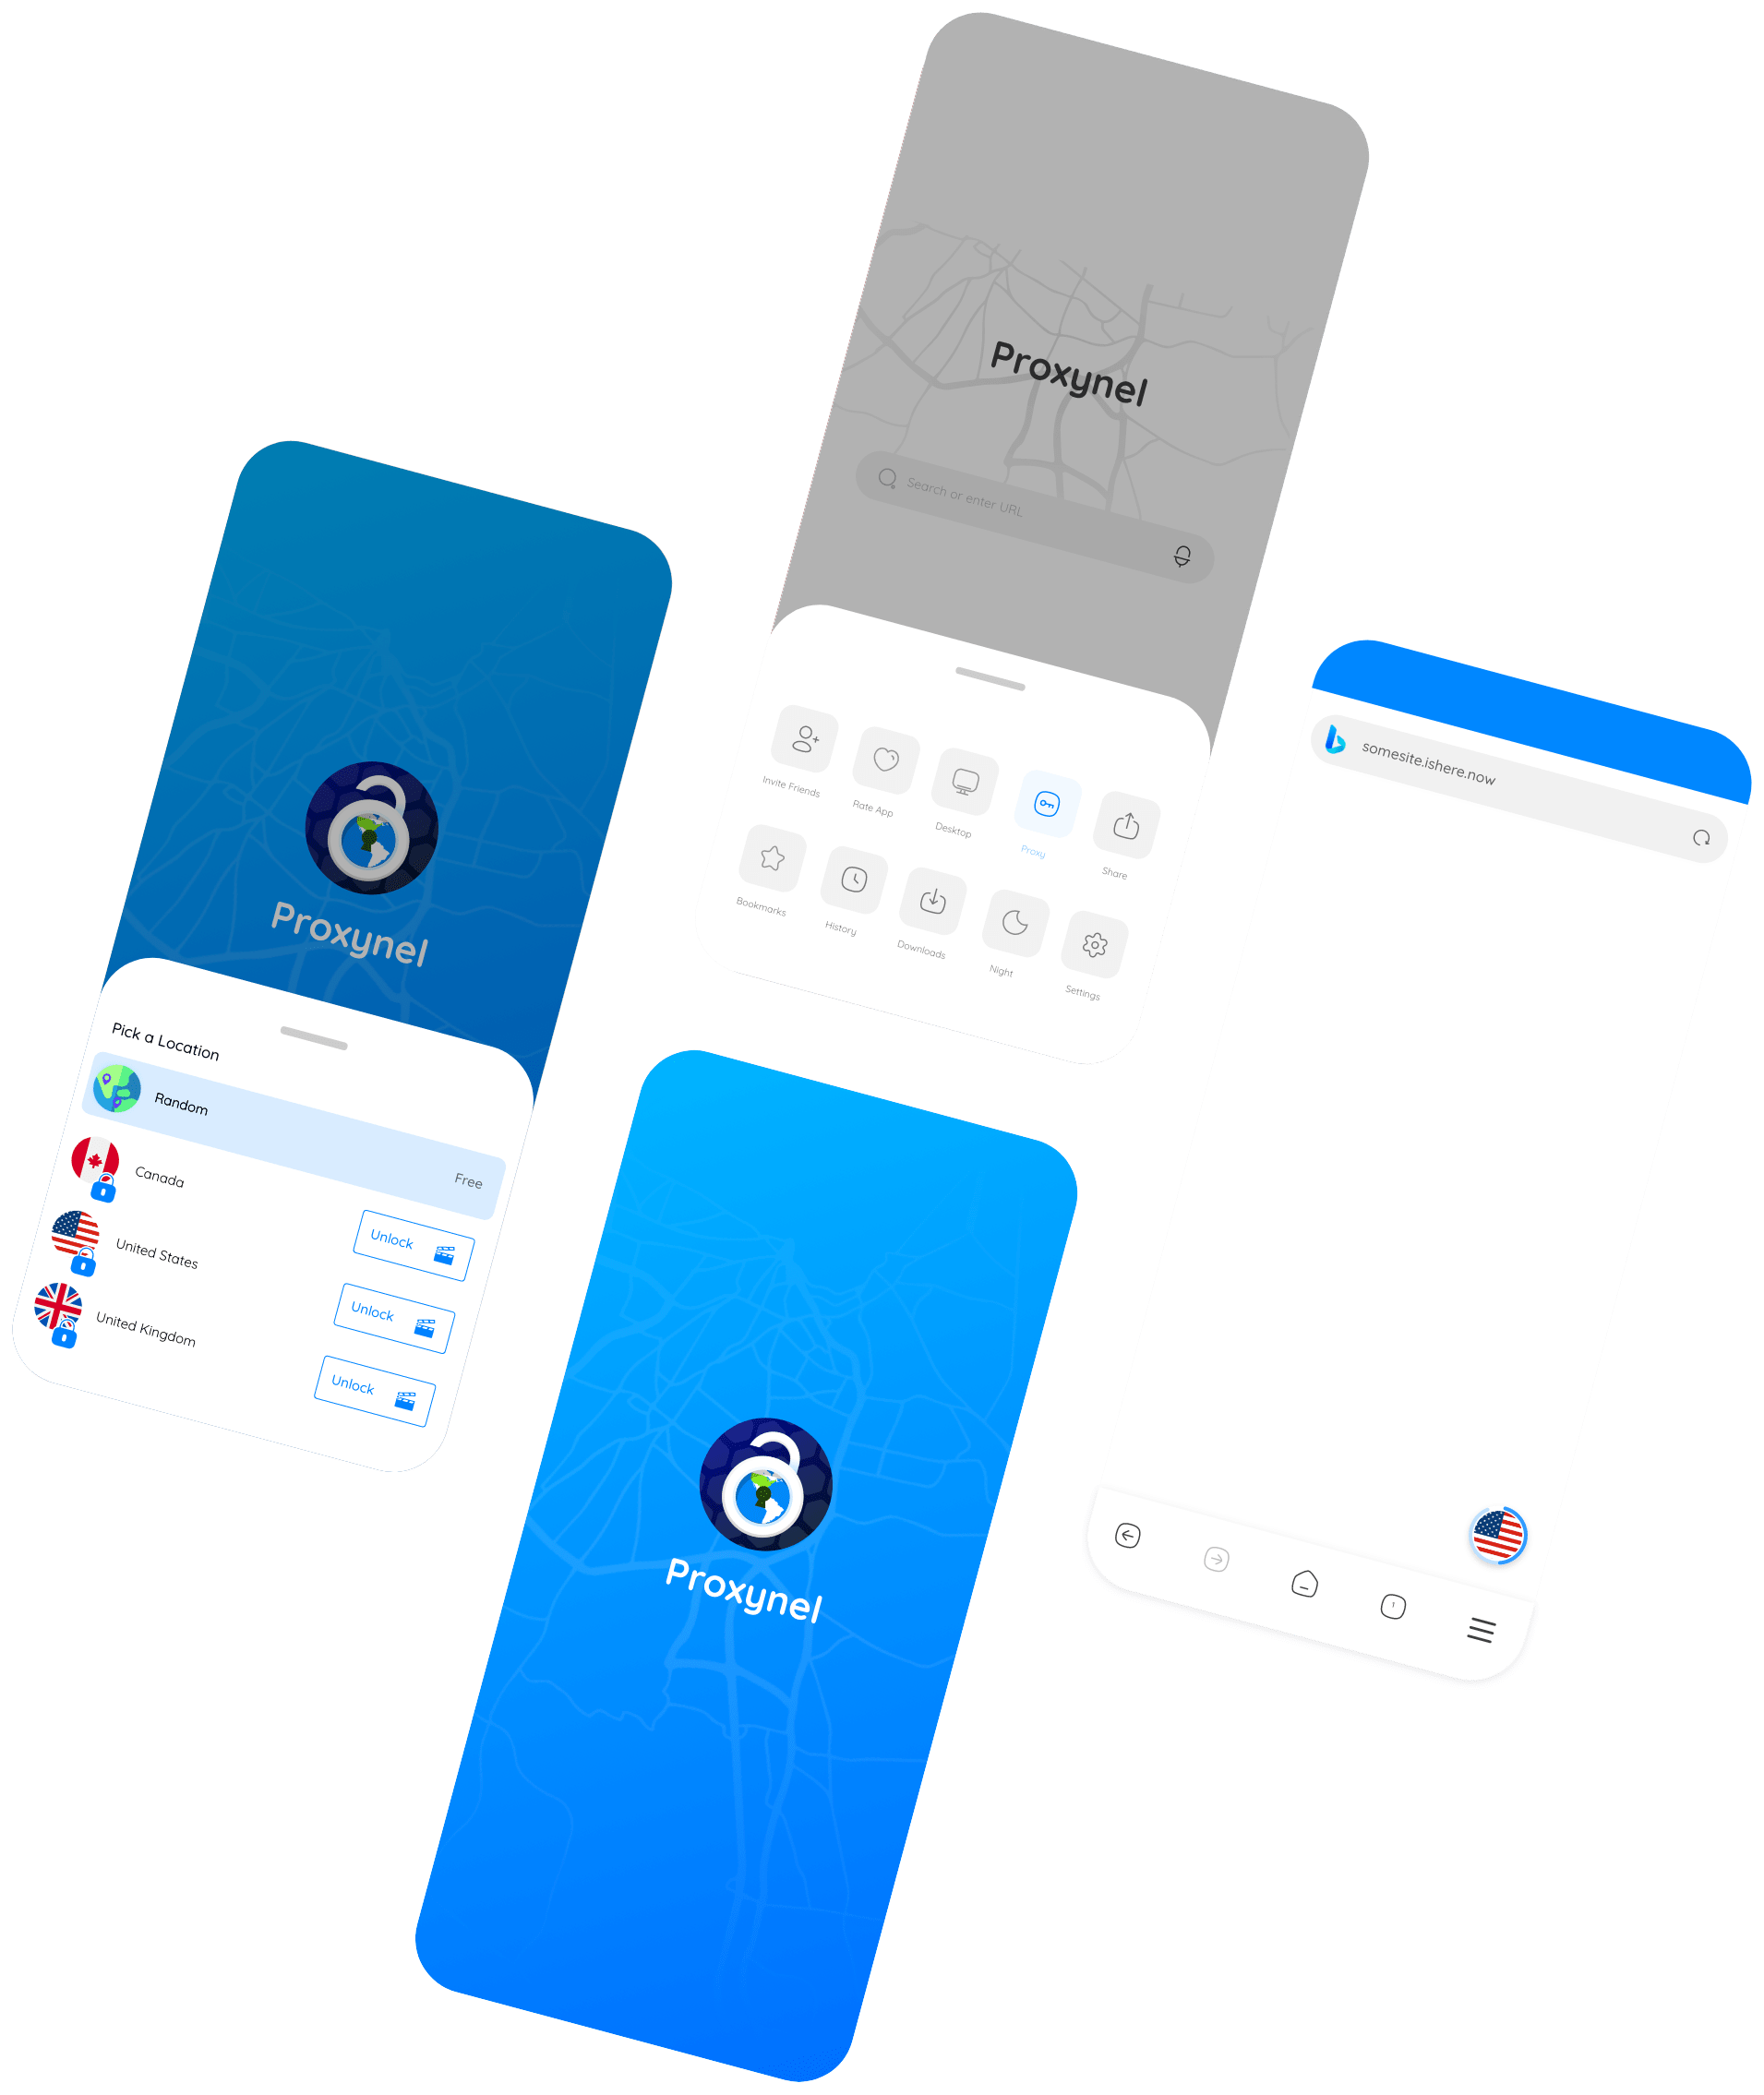 Proxynel App, Proxy, Android, Mobile